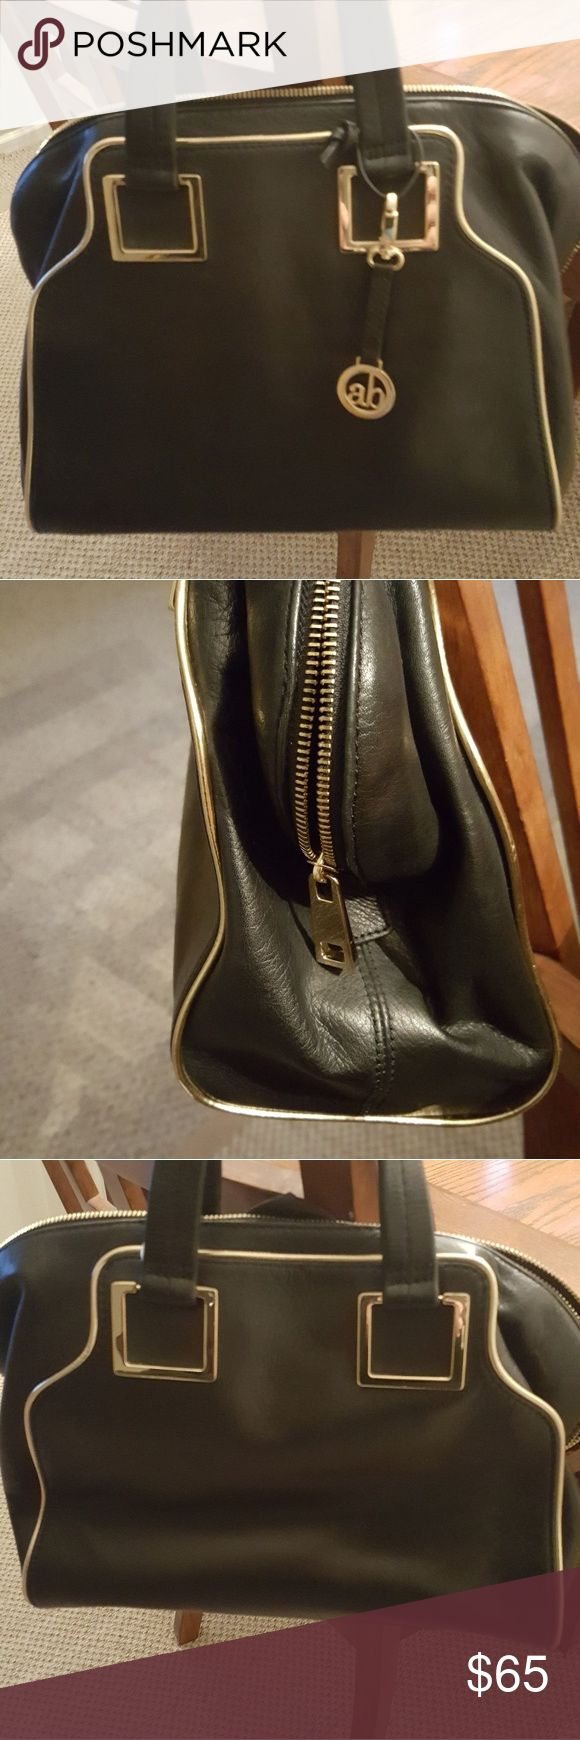 Audrey Brooke bowling bag Black with gold trim leather bowling bag NEW. Perfect condition. Lots of room inside. 2 zipper pockets indide. Audrey Brooke Bags Satchels